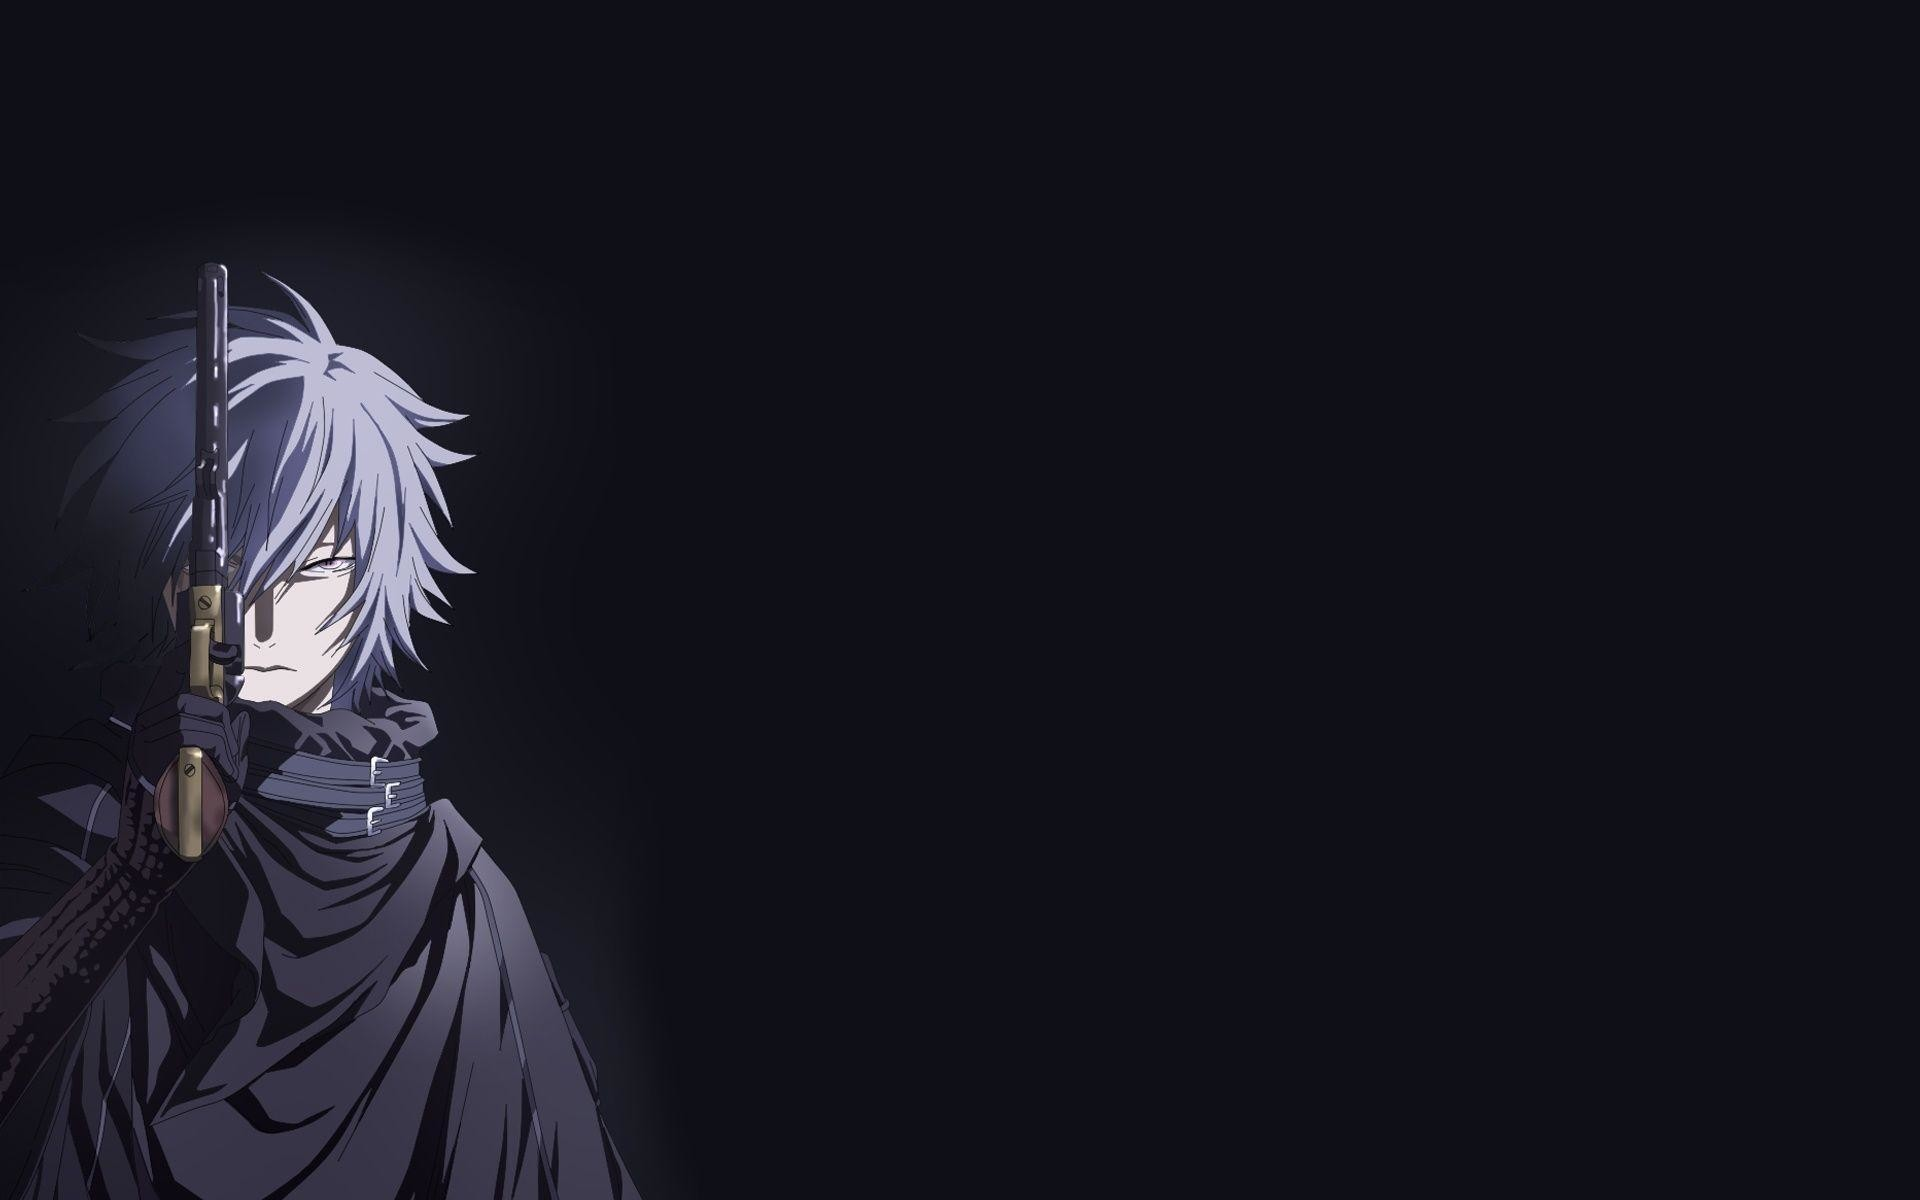 Hd Anime Wallpapers 1080p 72 Images